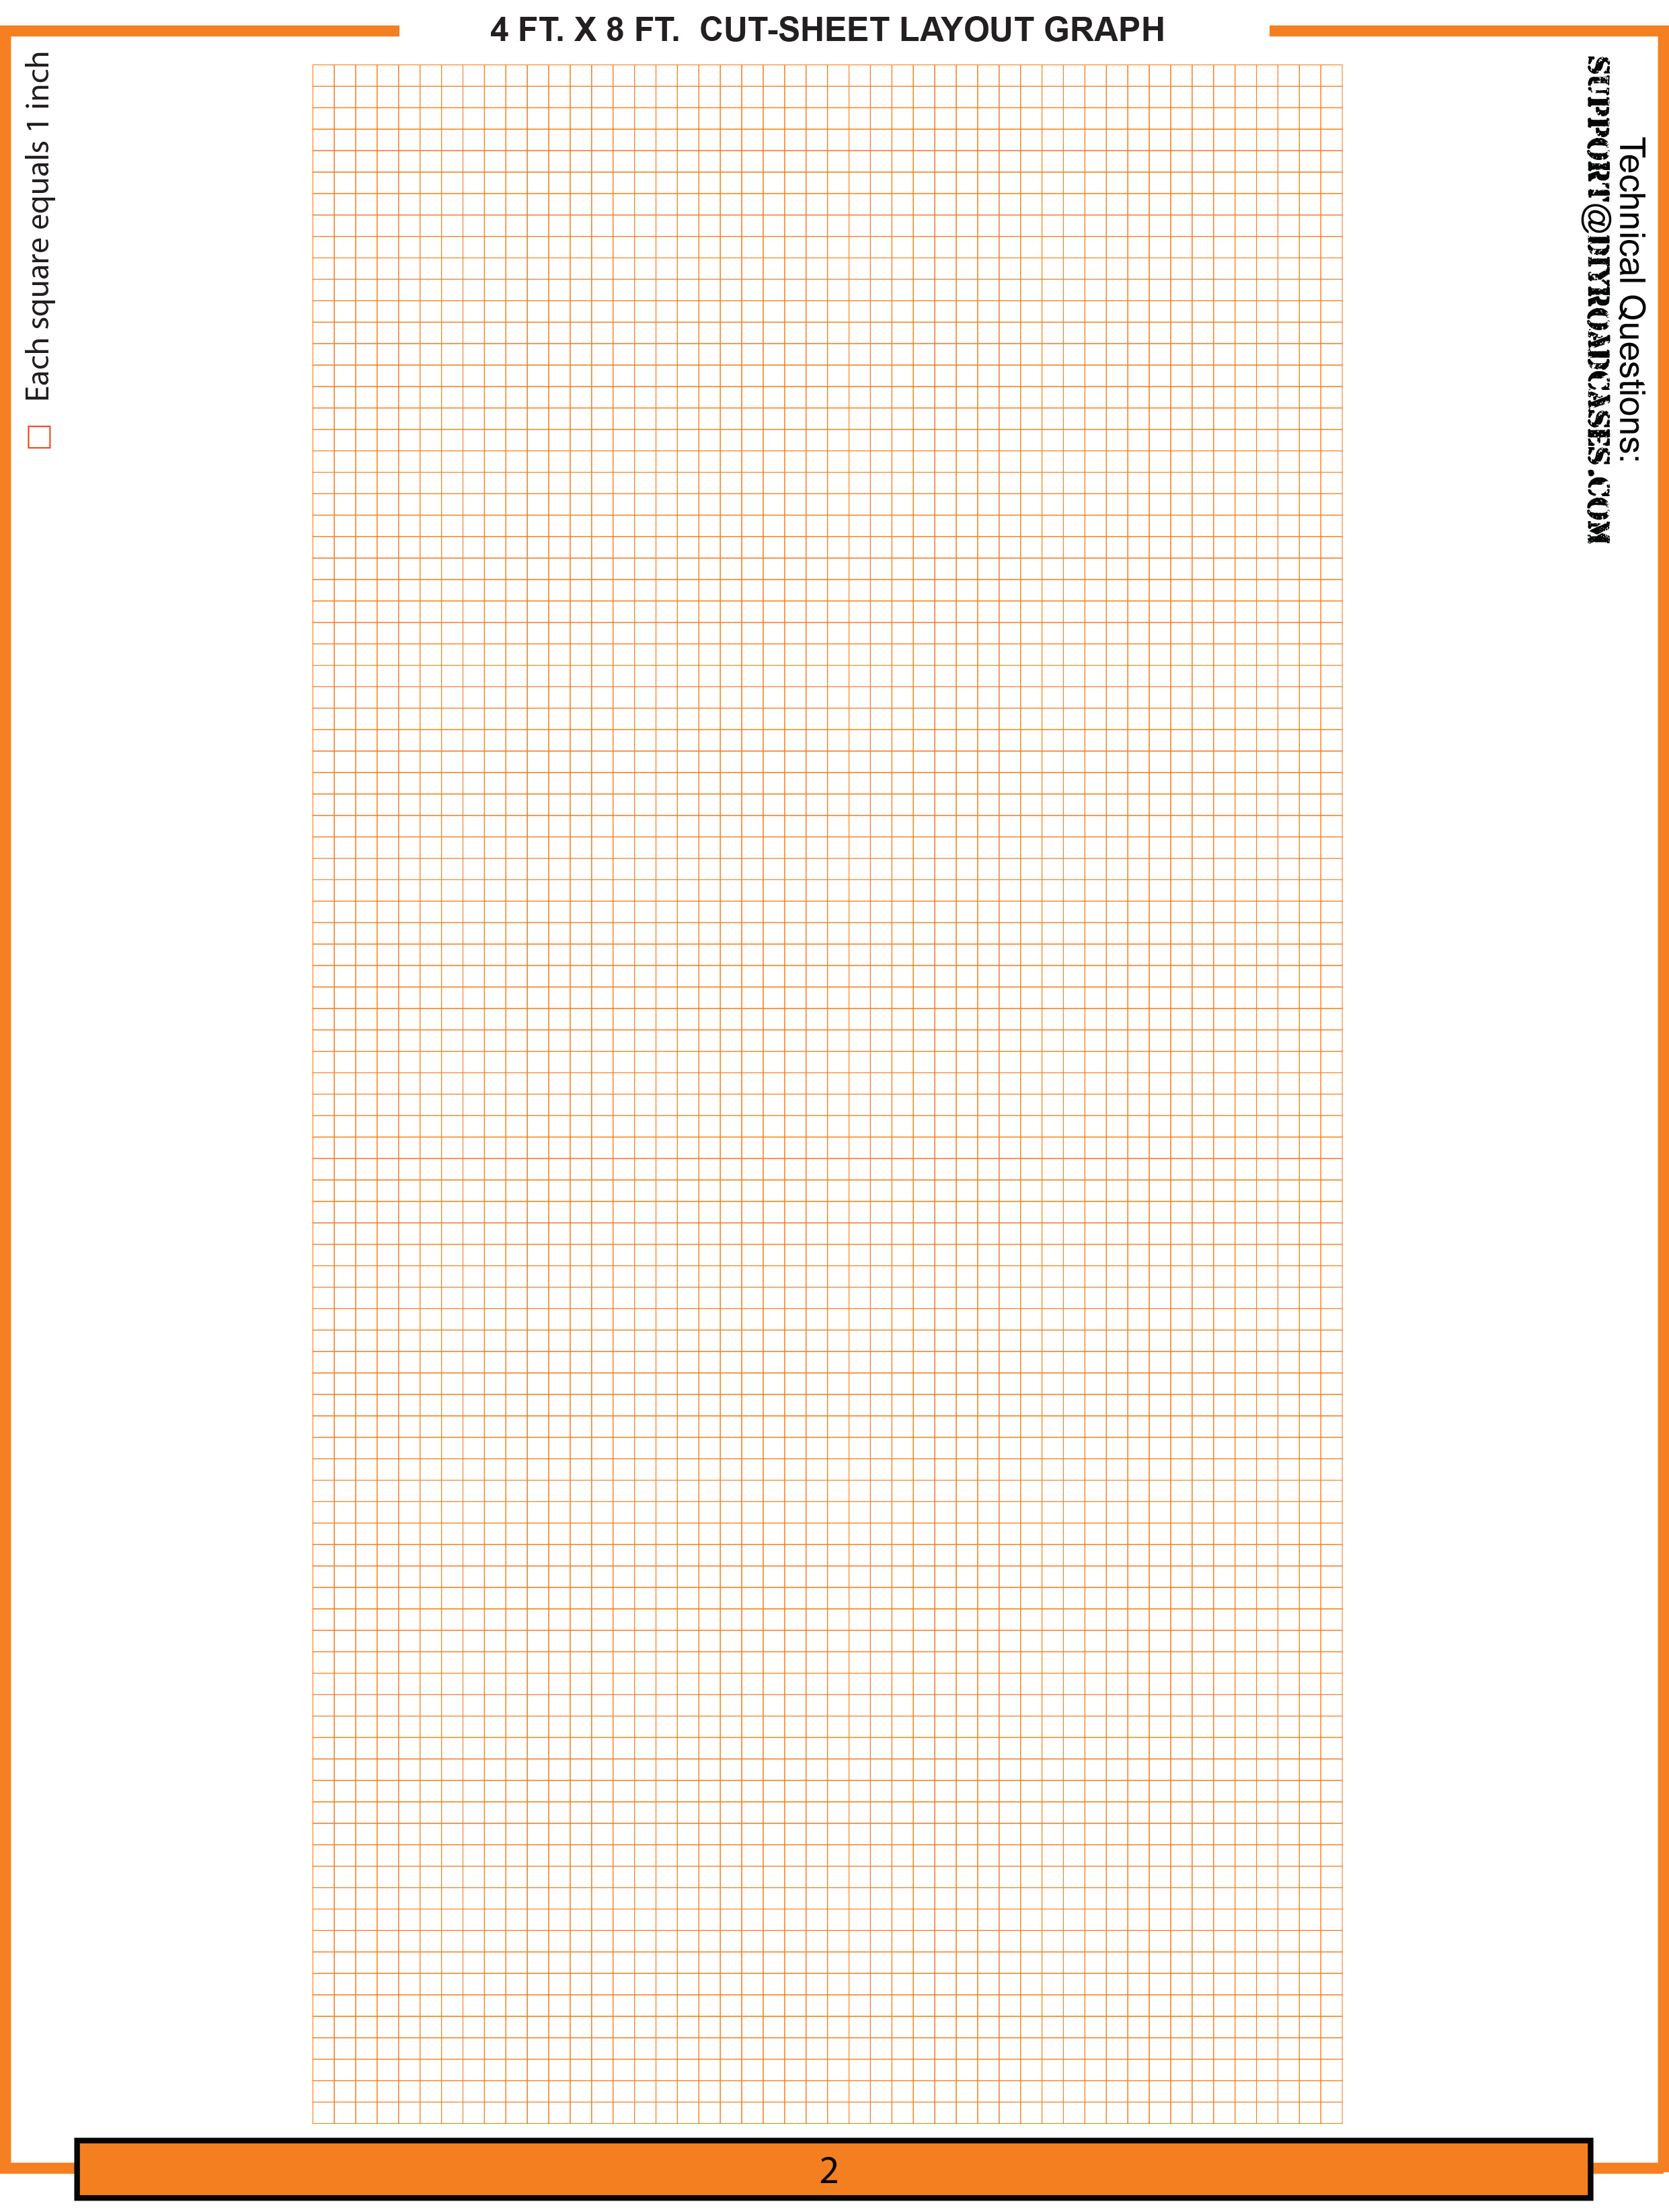 4-ft.-x-8-ft.-cut-sheet-layout-graph.jpg